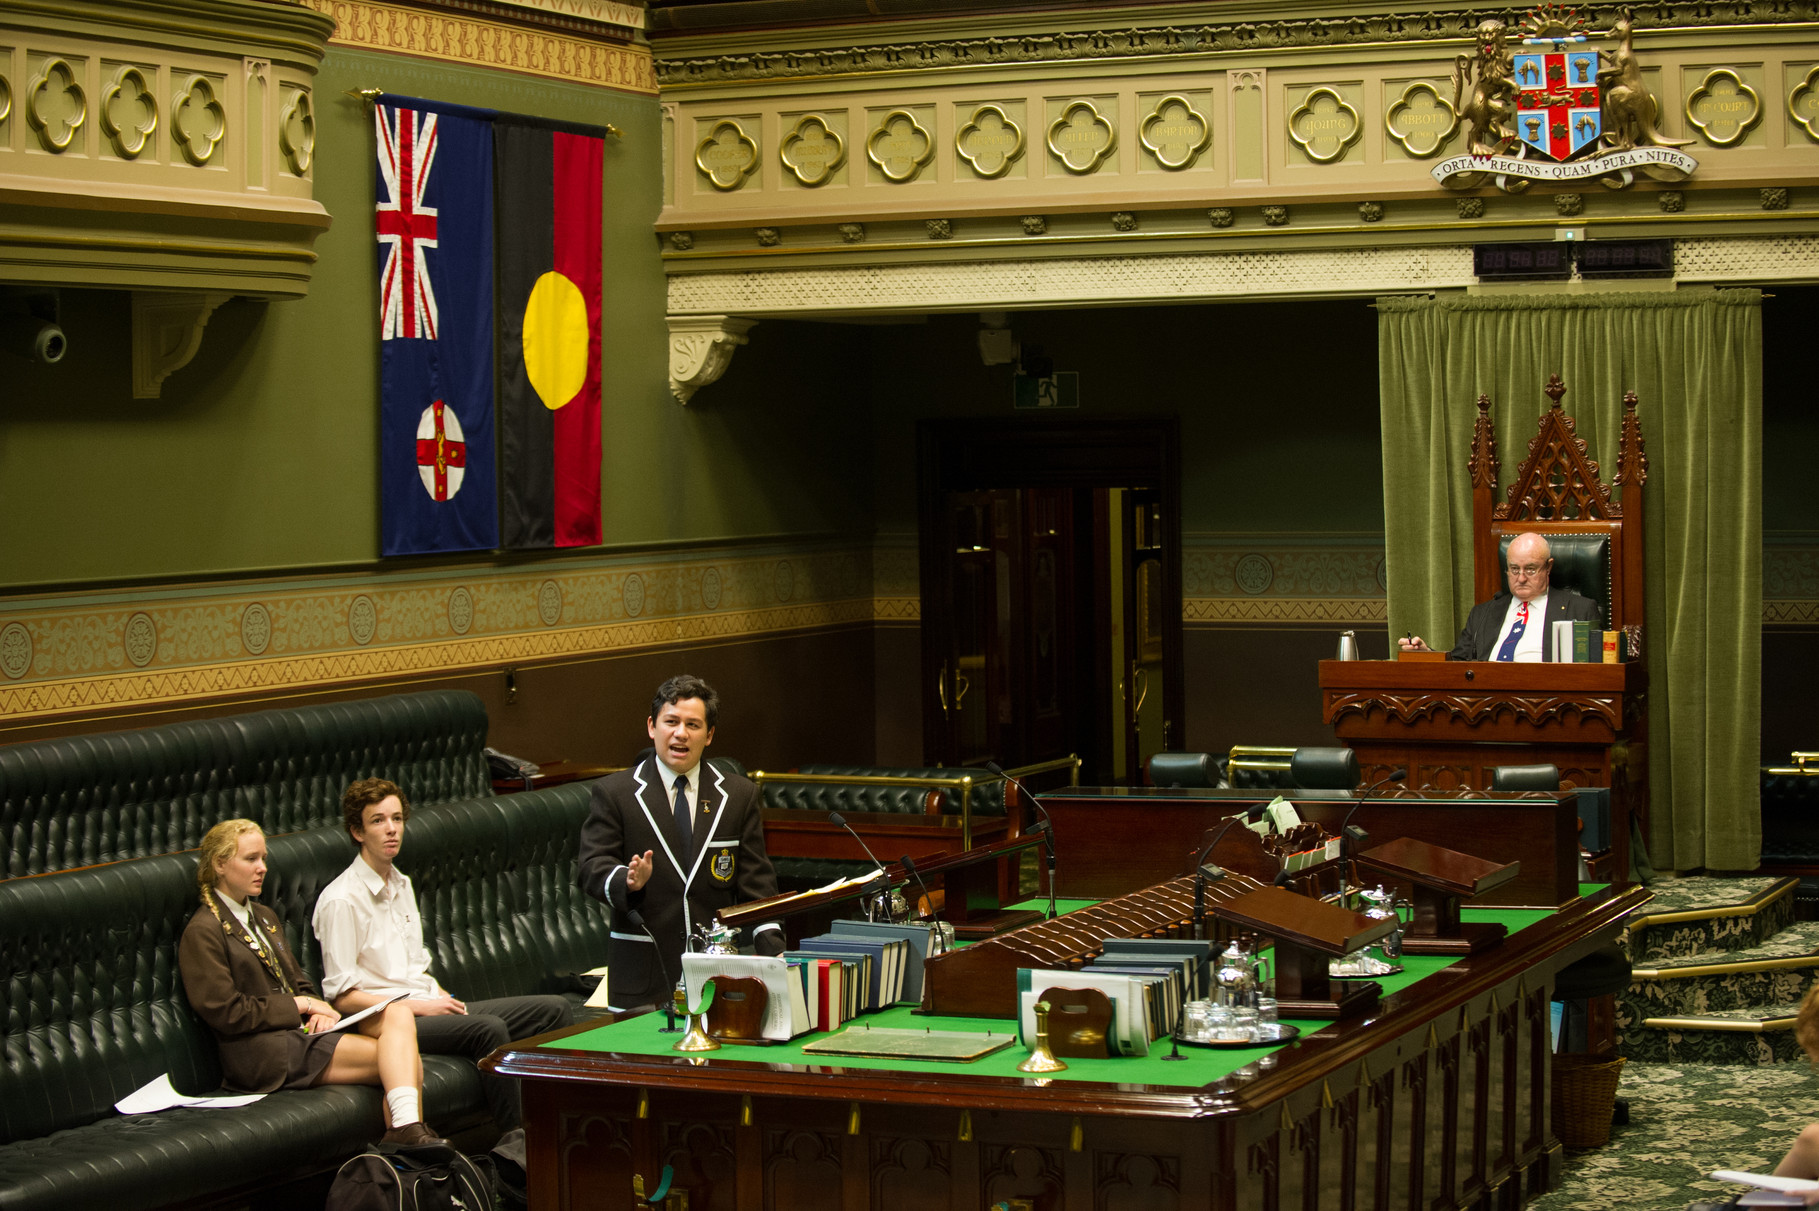 NSW Public Combined High Schools Team gear up for the debate